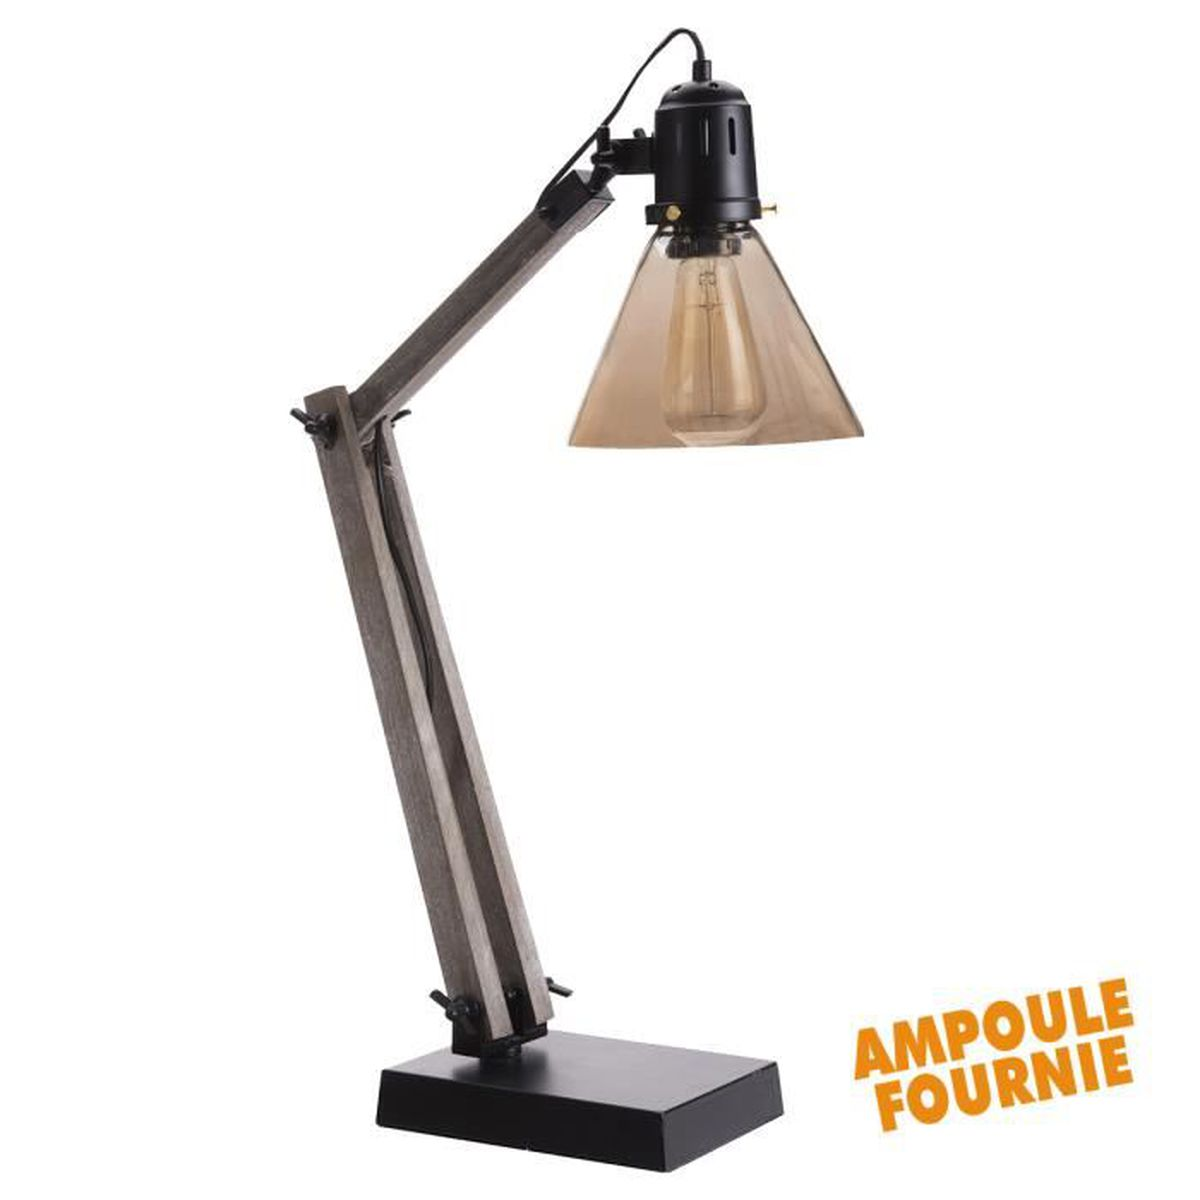 lampe poser style industriel structure bois abat jour conique en verre ampoule edison e27. Black Bedroom Furniture Sets. Home Design Ideas